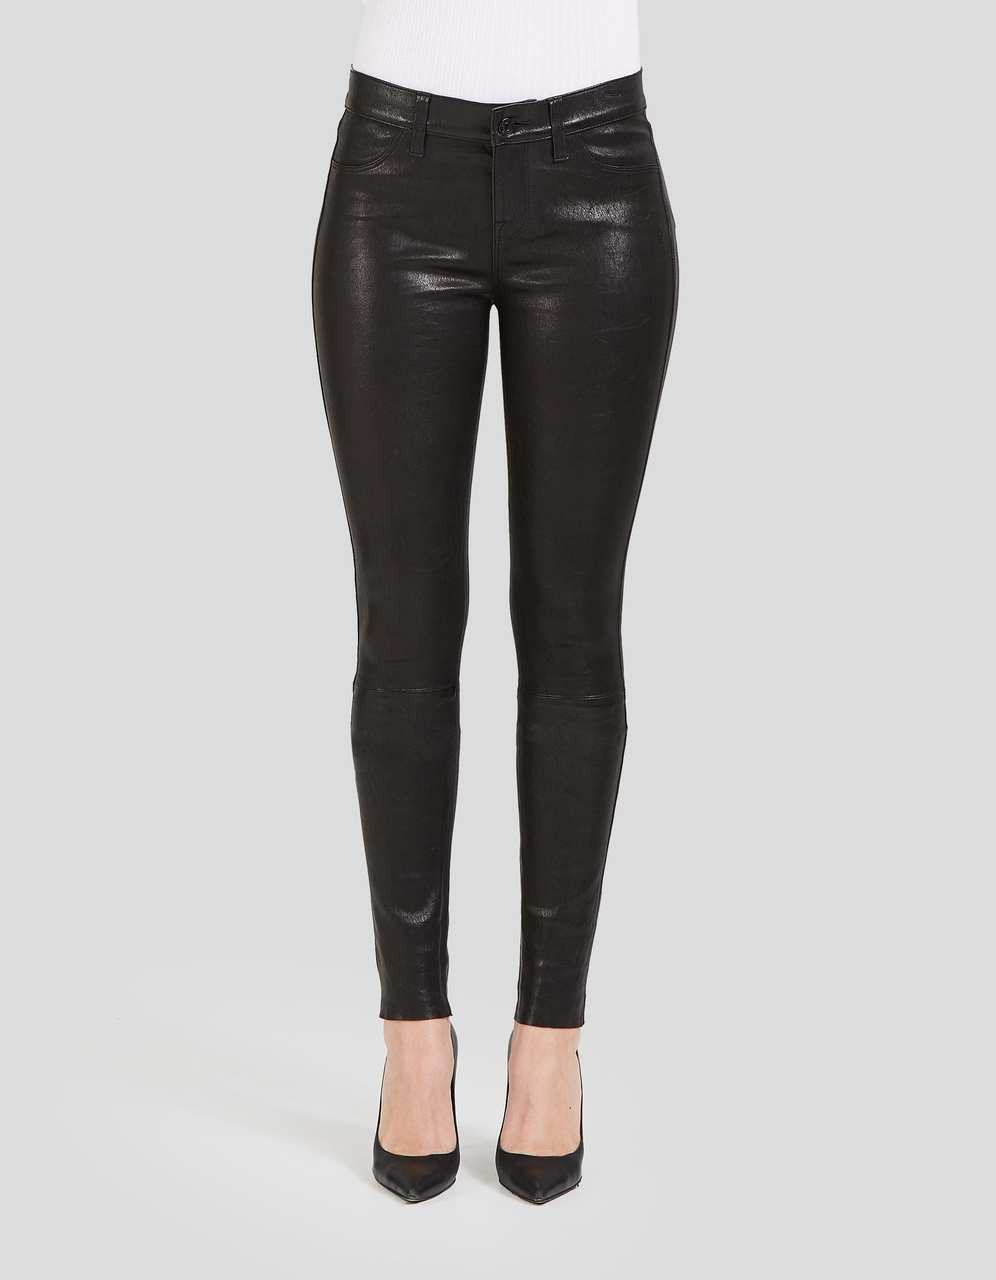 MID WAIST ANKLE SKINNY - Shya in Leather